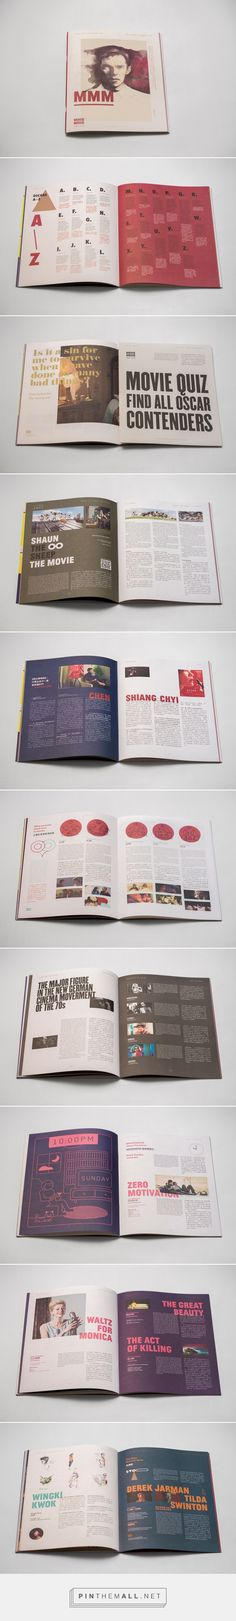 MMM 15 - The Future is unwritten on Behance... - a grouped images picture - Pin Them All